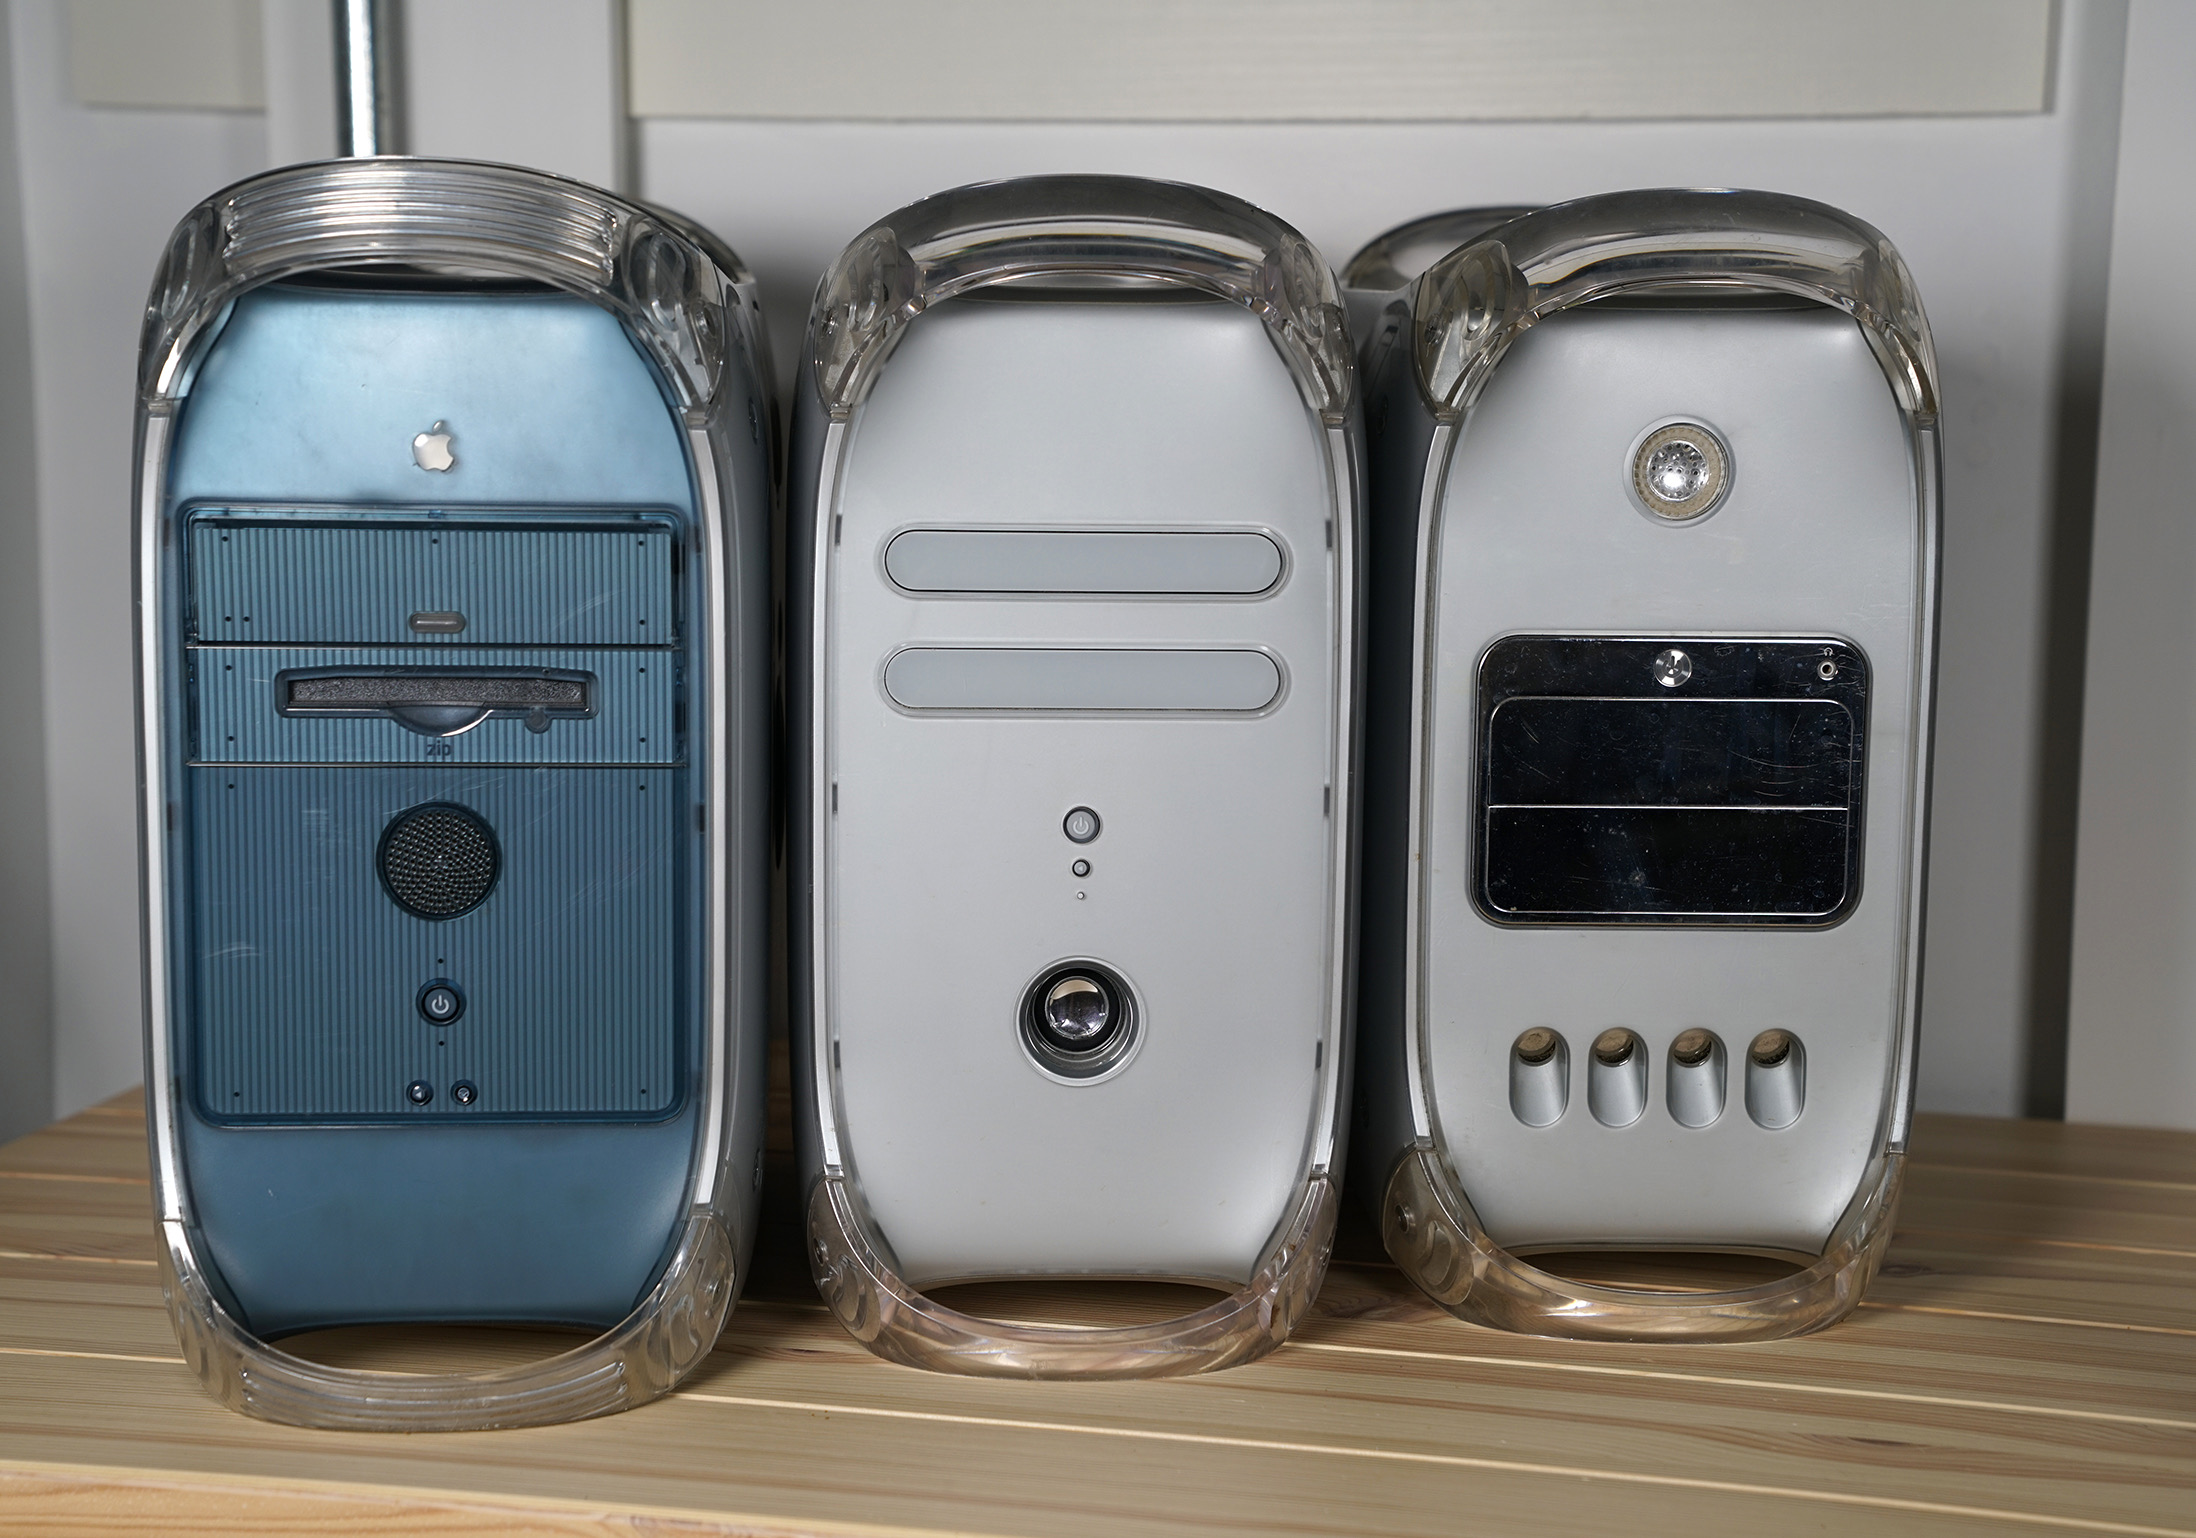 G4 towers